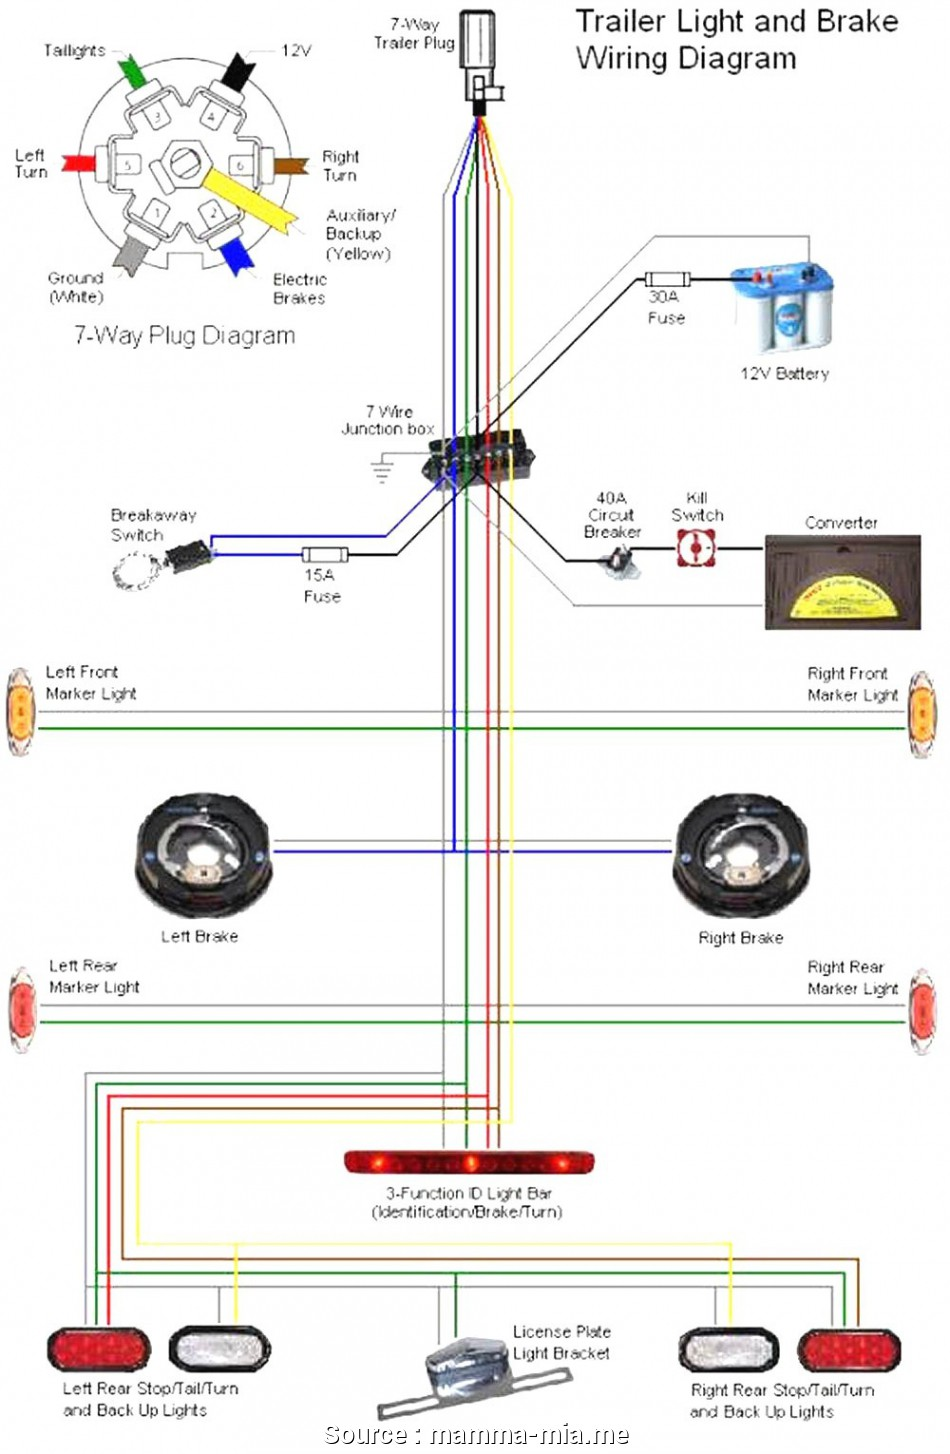 Bl 2582 Electric Trailer Brakes Diagrams Schematic Wiring